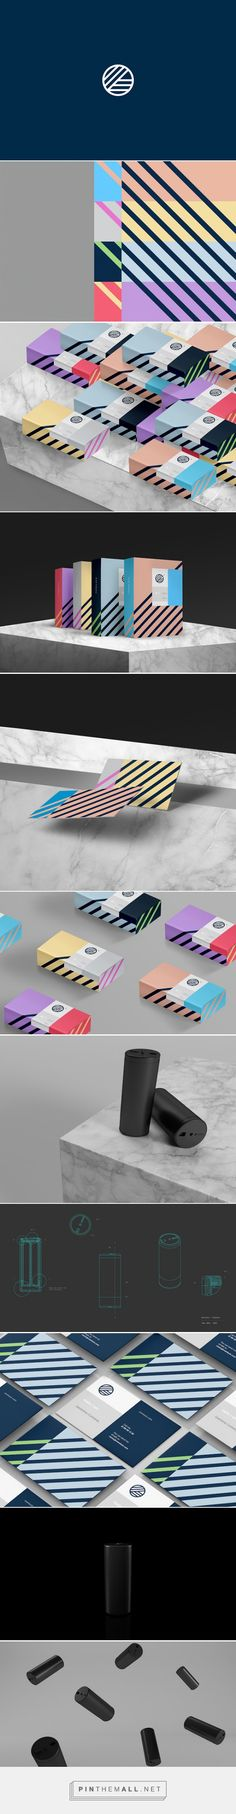 Ownluck - Termluck #concept #packaging by Sabbath - http://www.packagingoftheworld.com/2015/05/ownluck-termluck-student-project.html